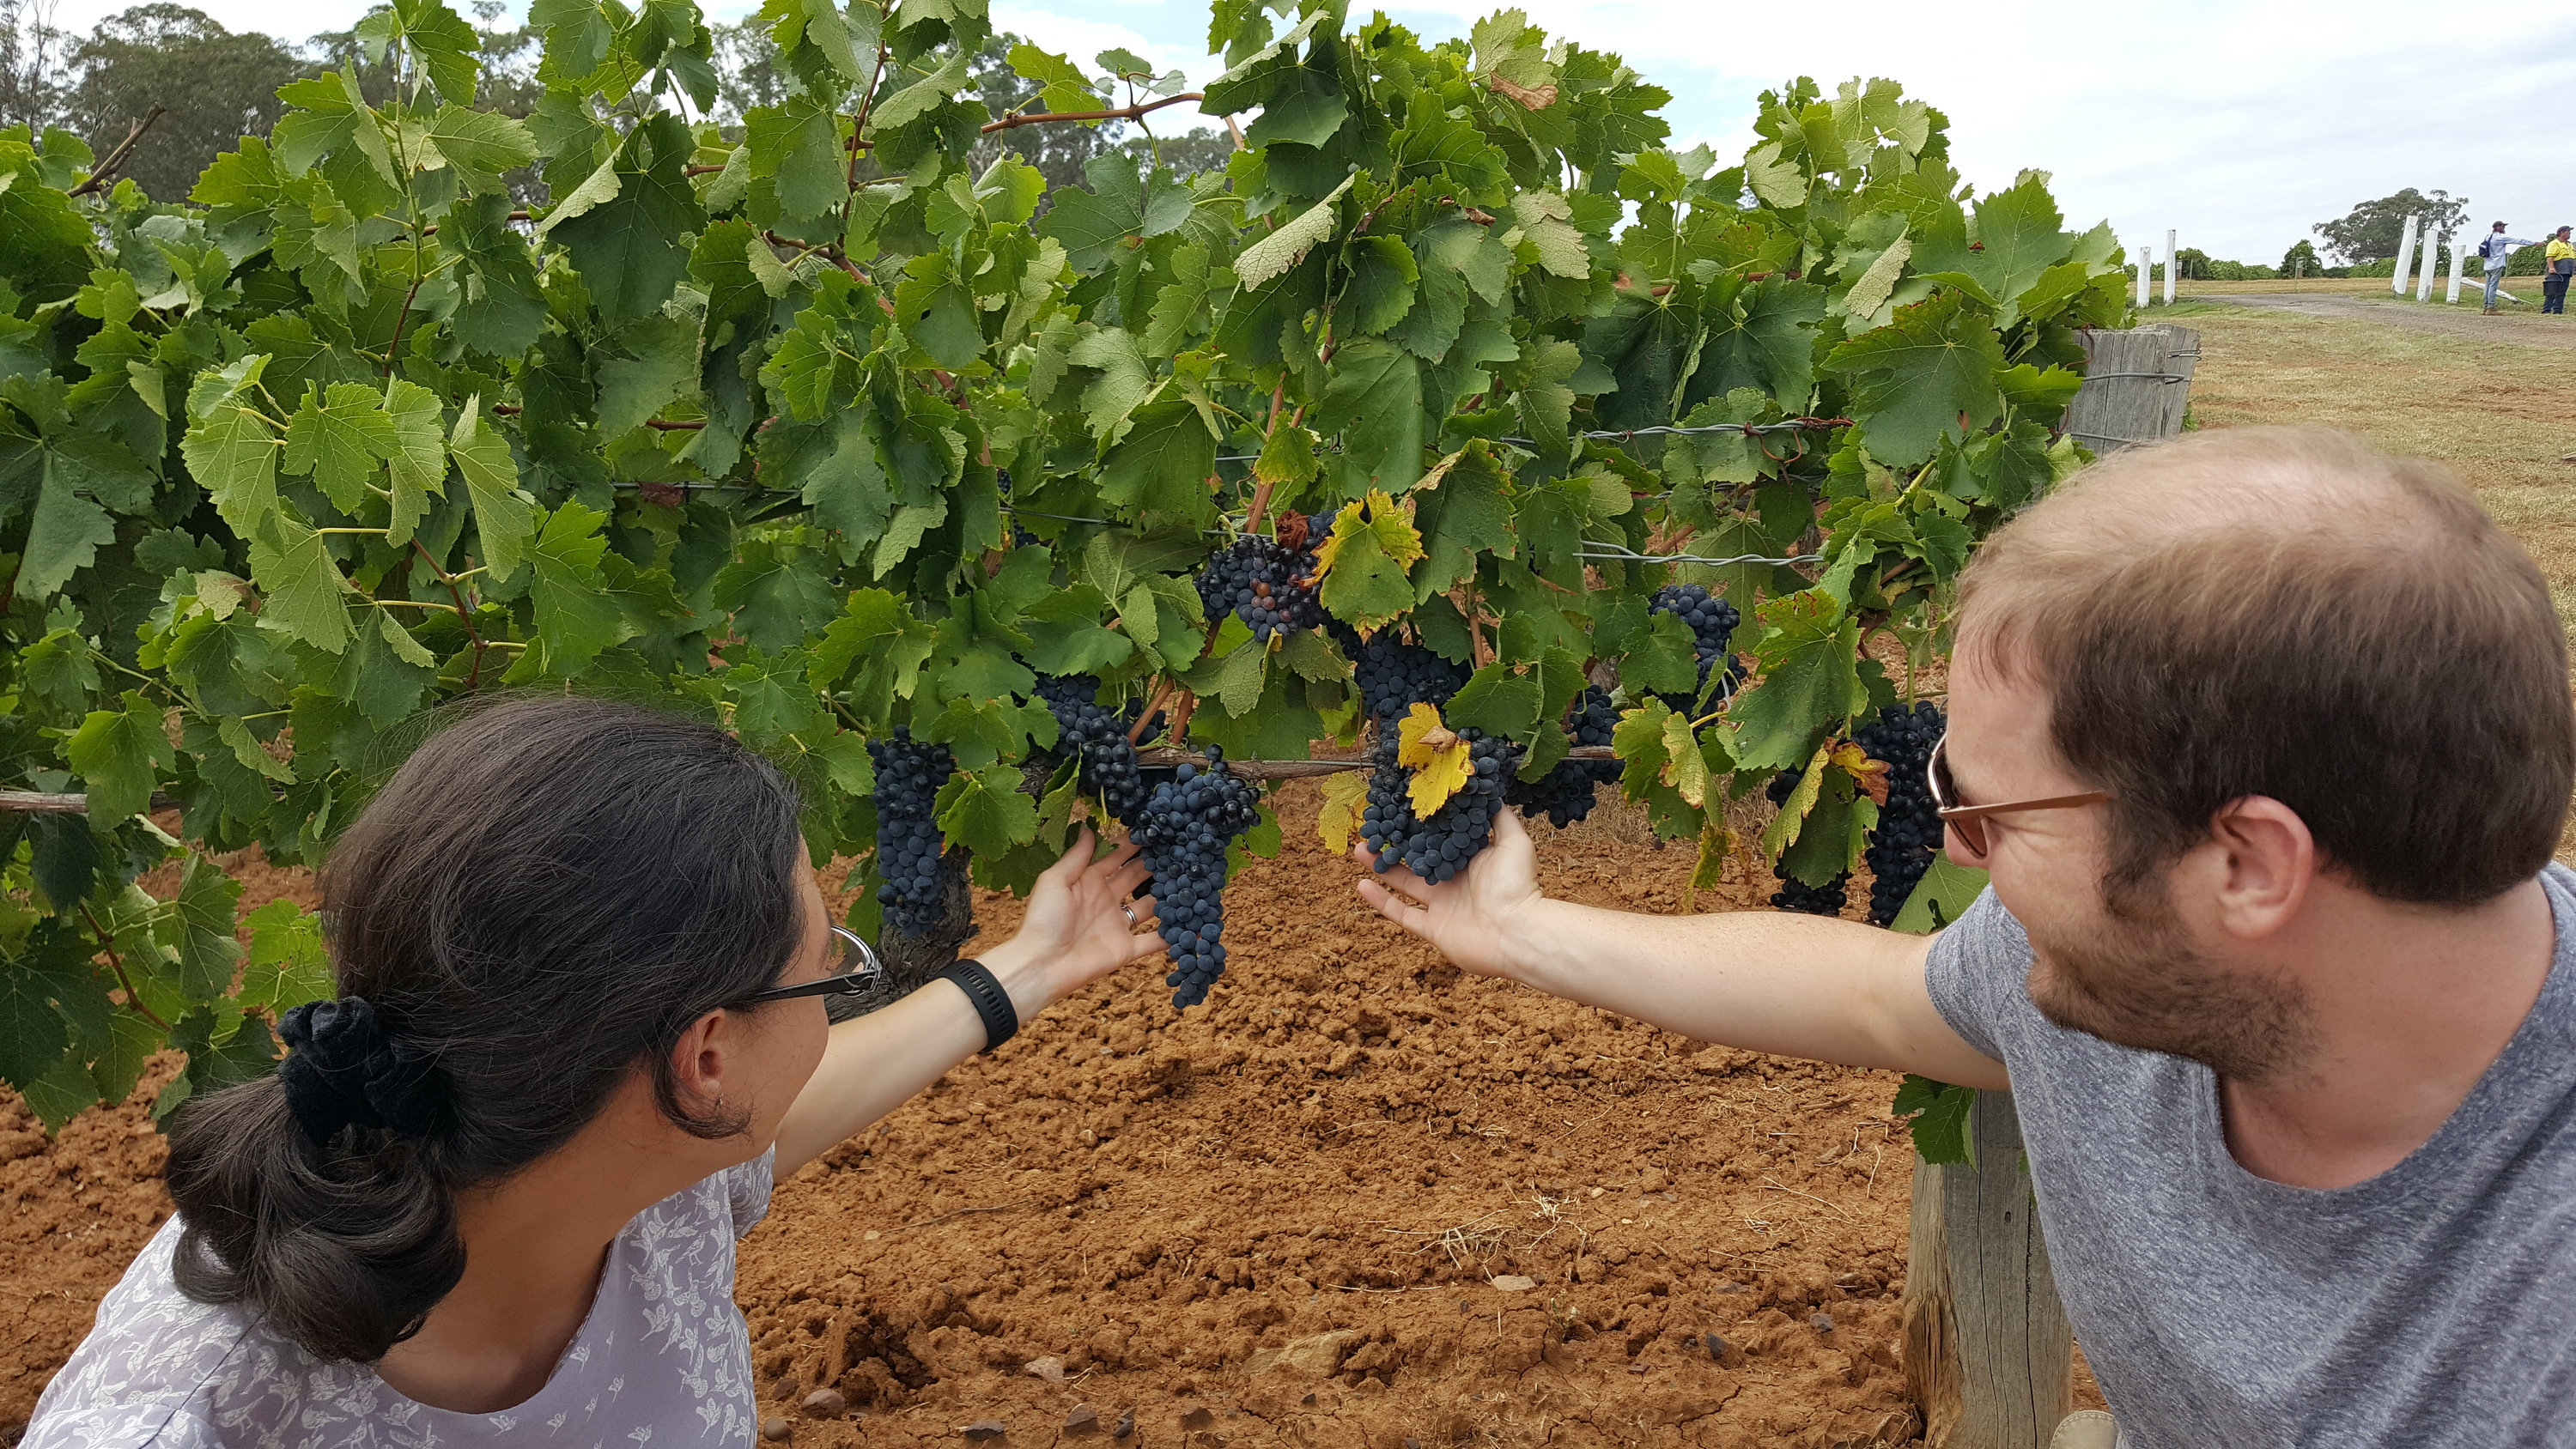 Couple looks at grapes on a vine.